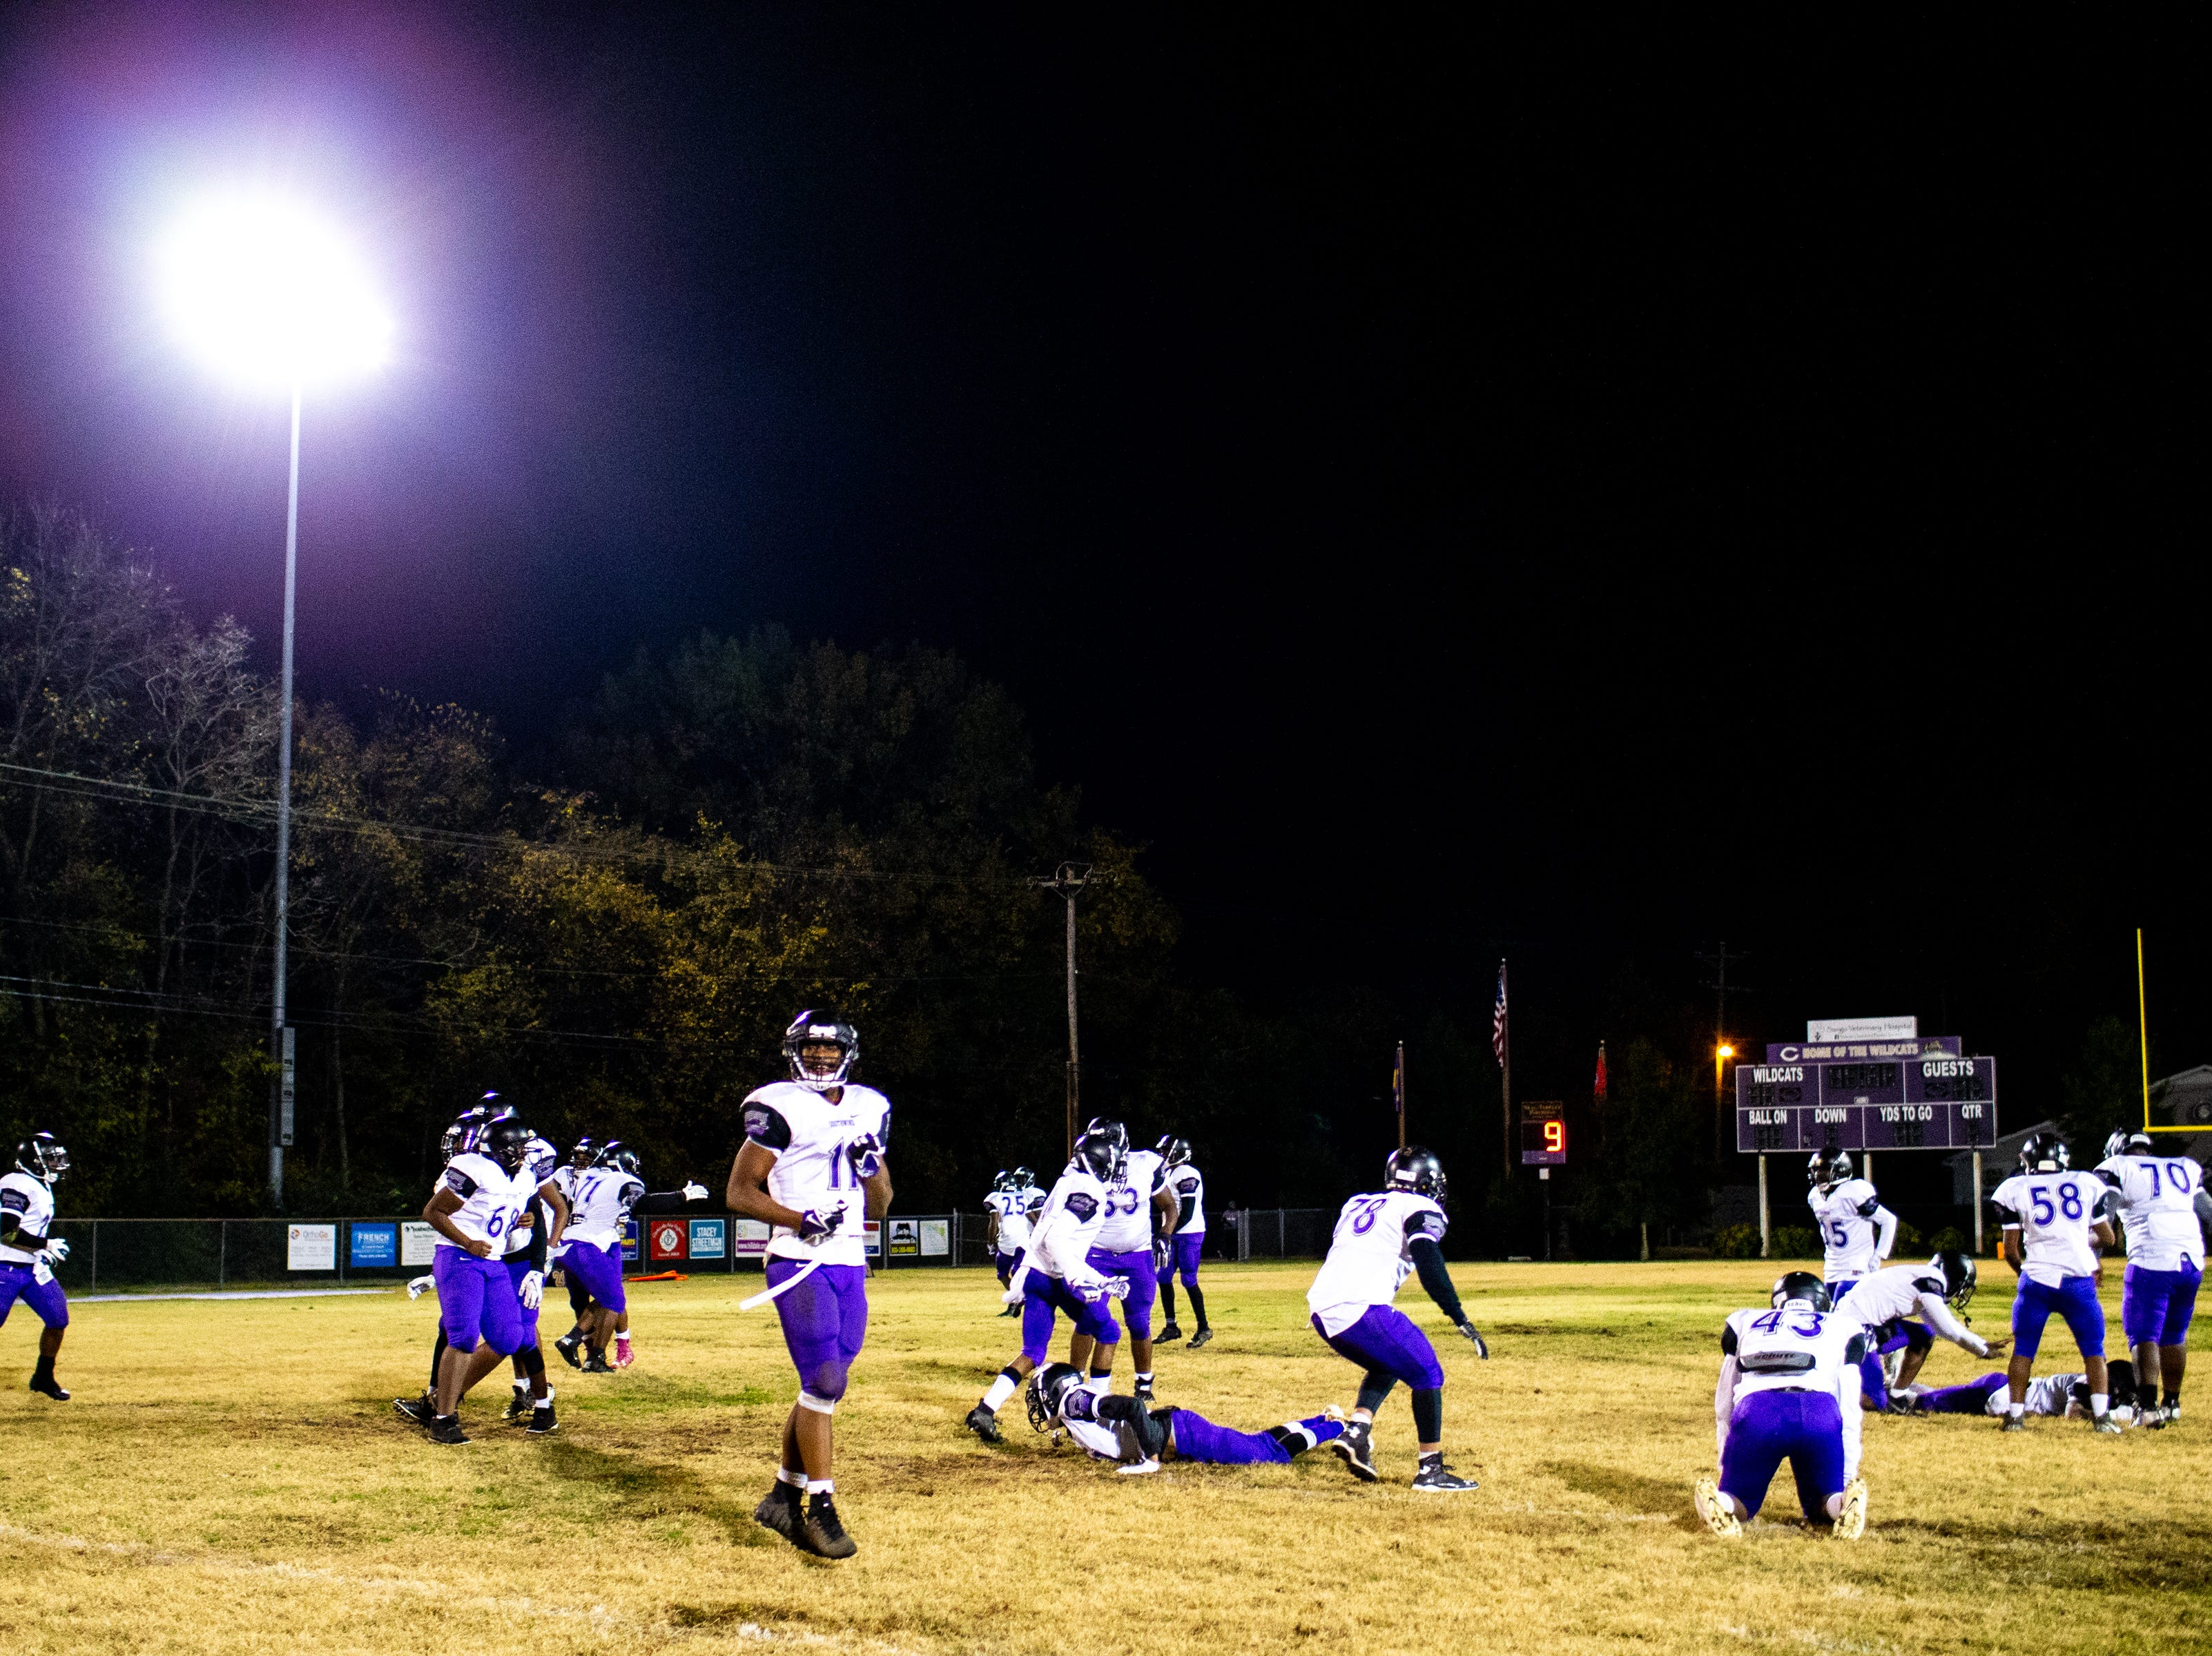 Southwind celebrates after winning in overtime at Clarksville High Friday, Nov. 2, 2018, in Clarksville, Tenn.